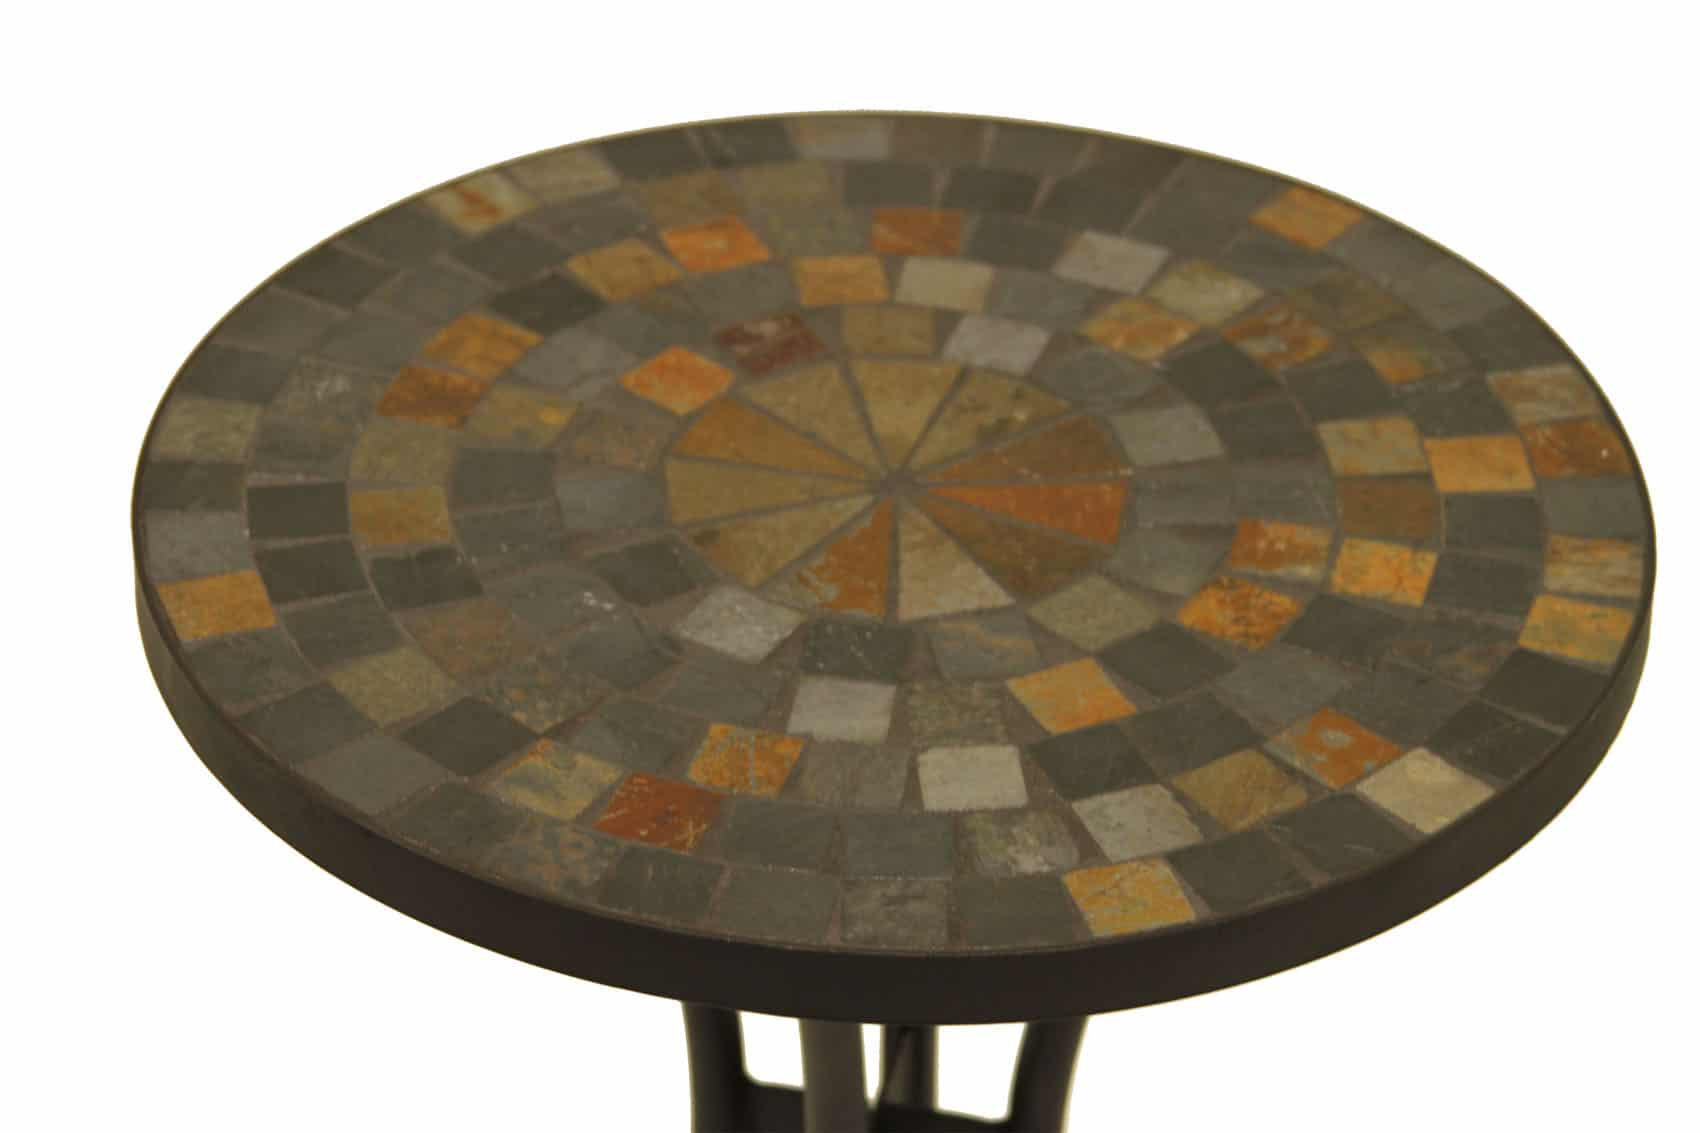 slate mosaic accent table for decks patios and gardens cobble stone top only outdoor nesting dining chairs glass clearance square gold end pier one wall decor white wicker coffee